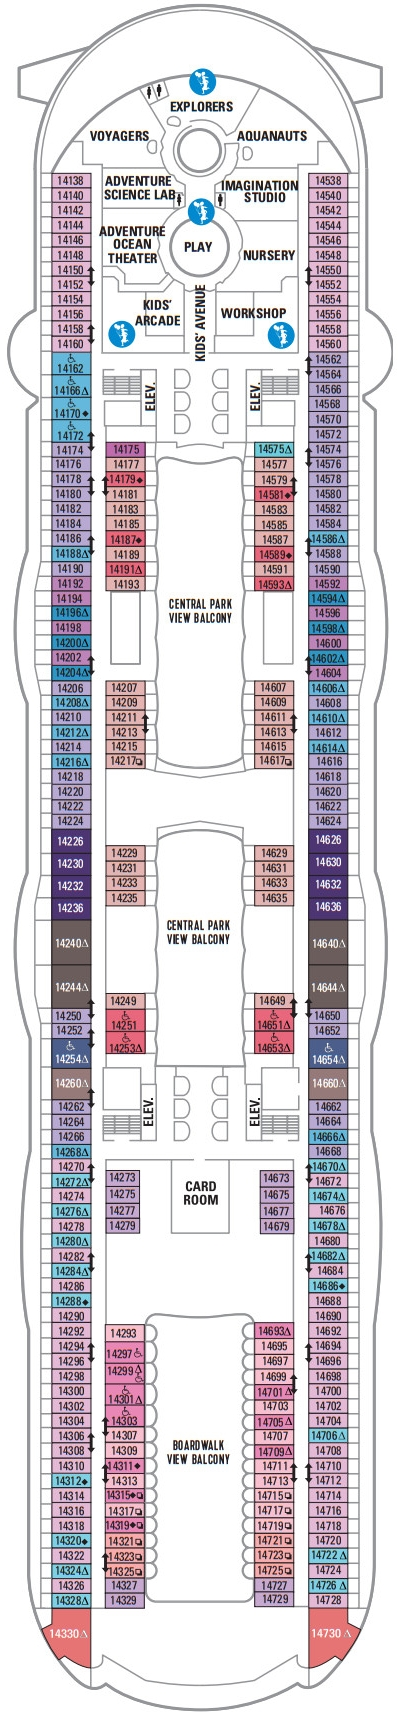 Allure Of The Seas Deck 14 layout